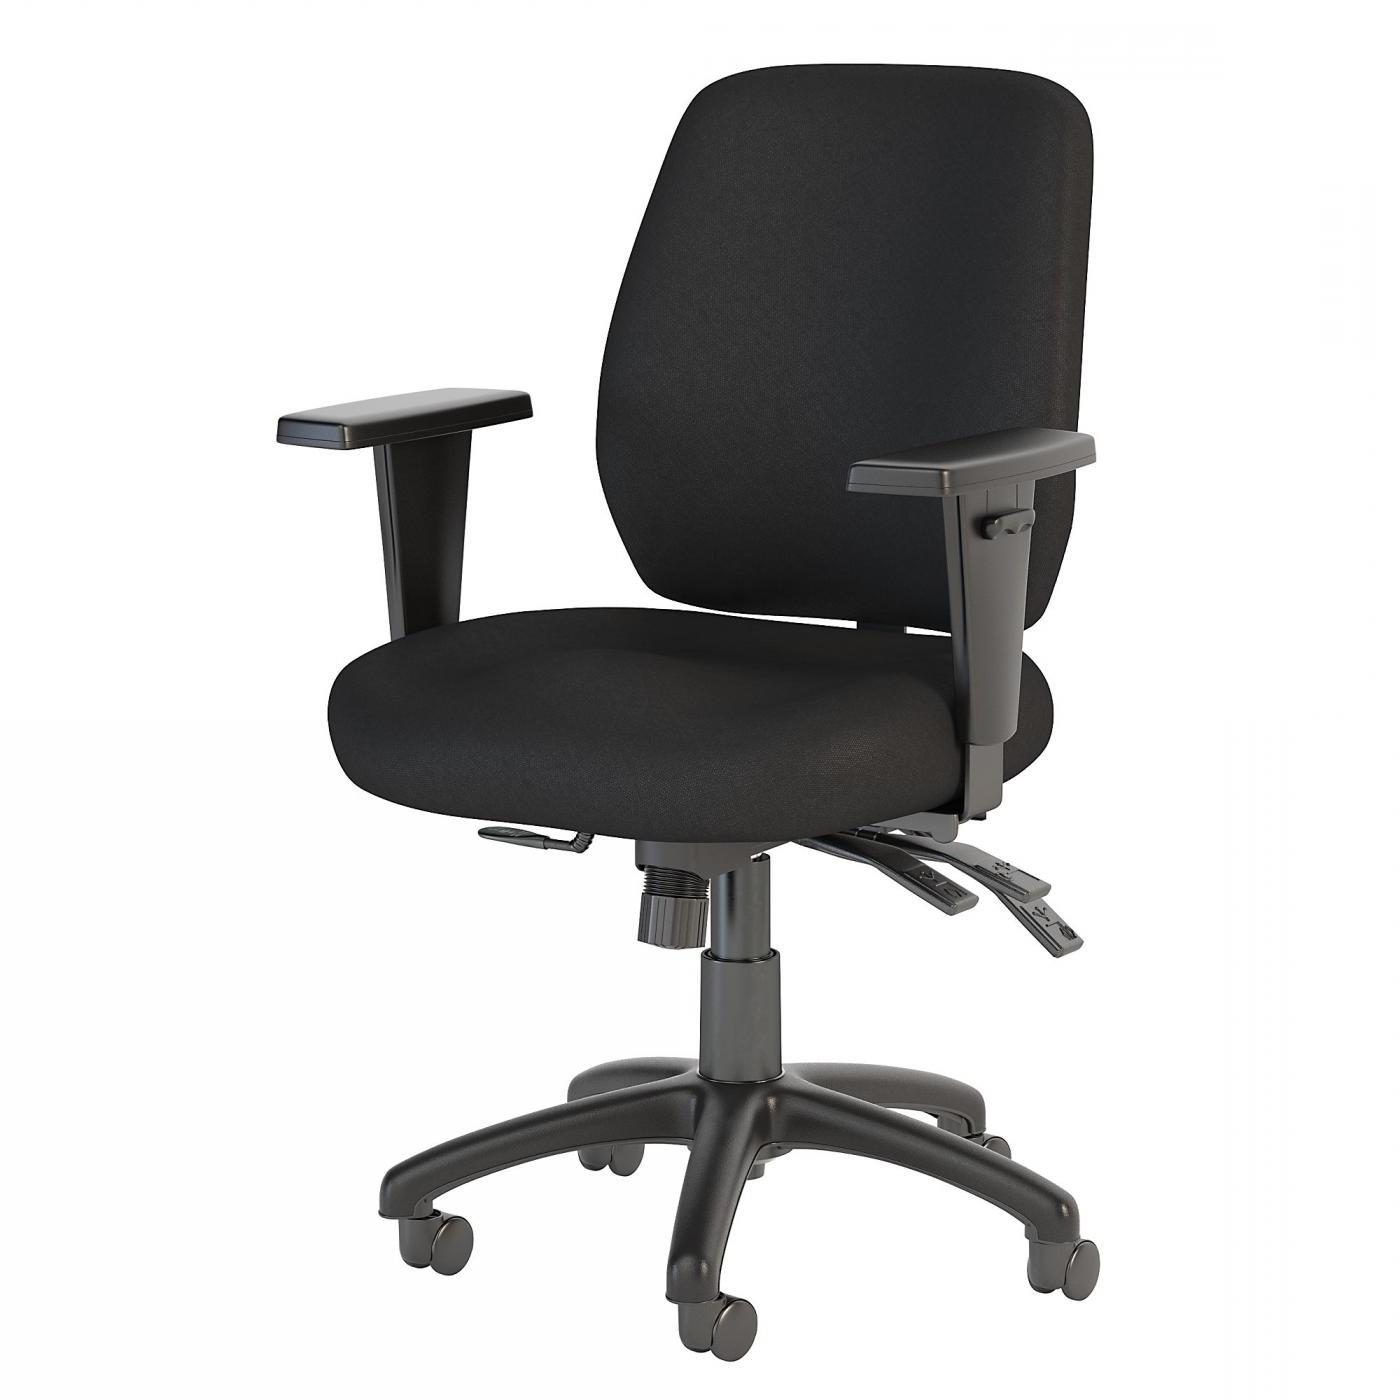 BUSH BUSINESS FURNITURE PROSPER MID BACK MULTIFUNCTION OFFICE CHAIR. FREE SHIPPING.  SALE DEDUCT 10% MORE ENTER '10percent' IN COUPON CODE BOX WHILE CHECKING OUT.